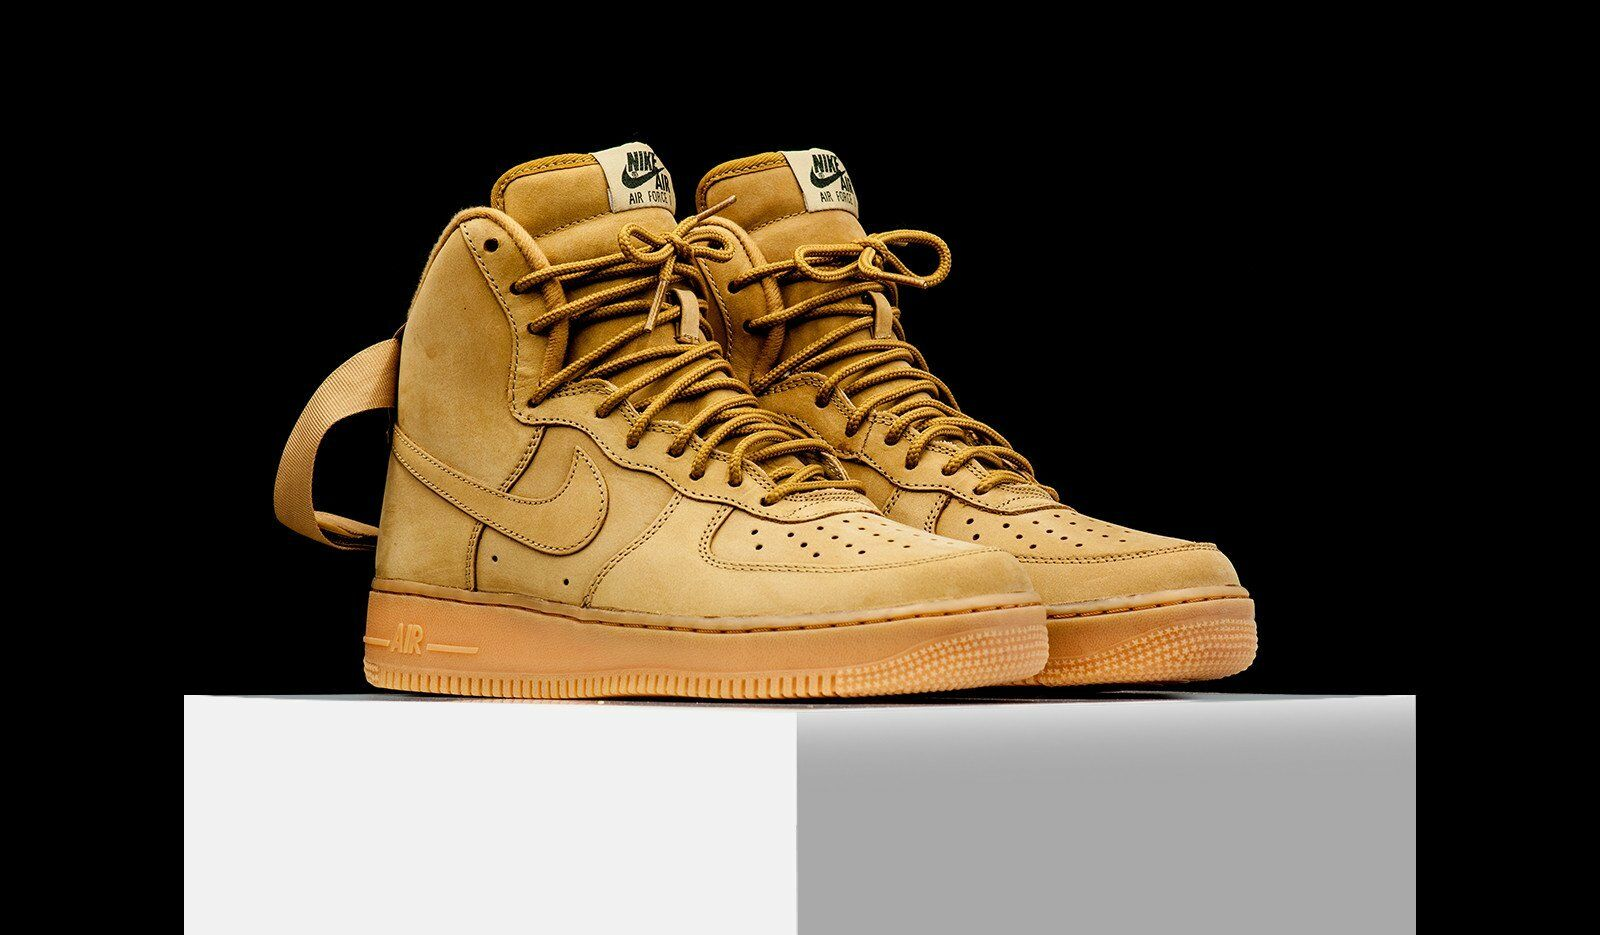 Nike air force 1 alto